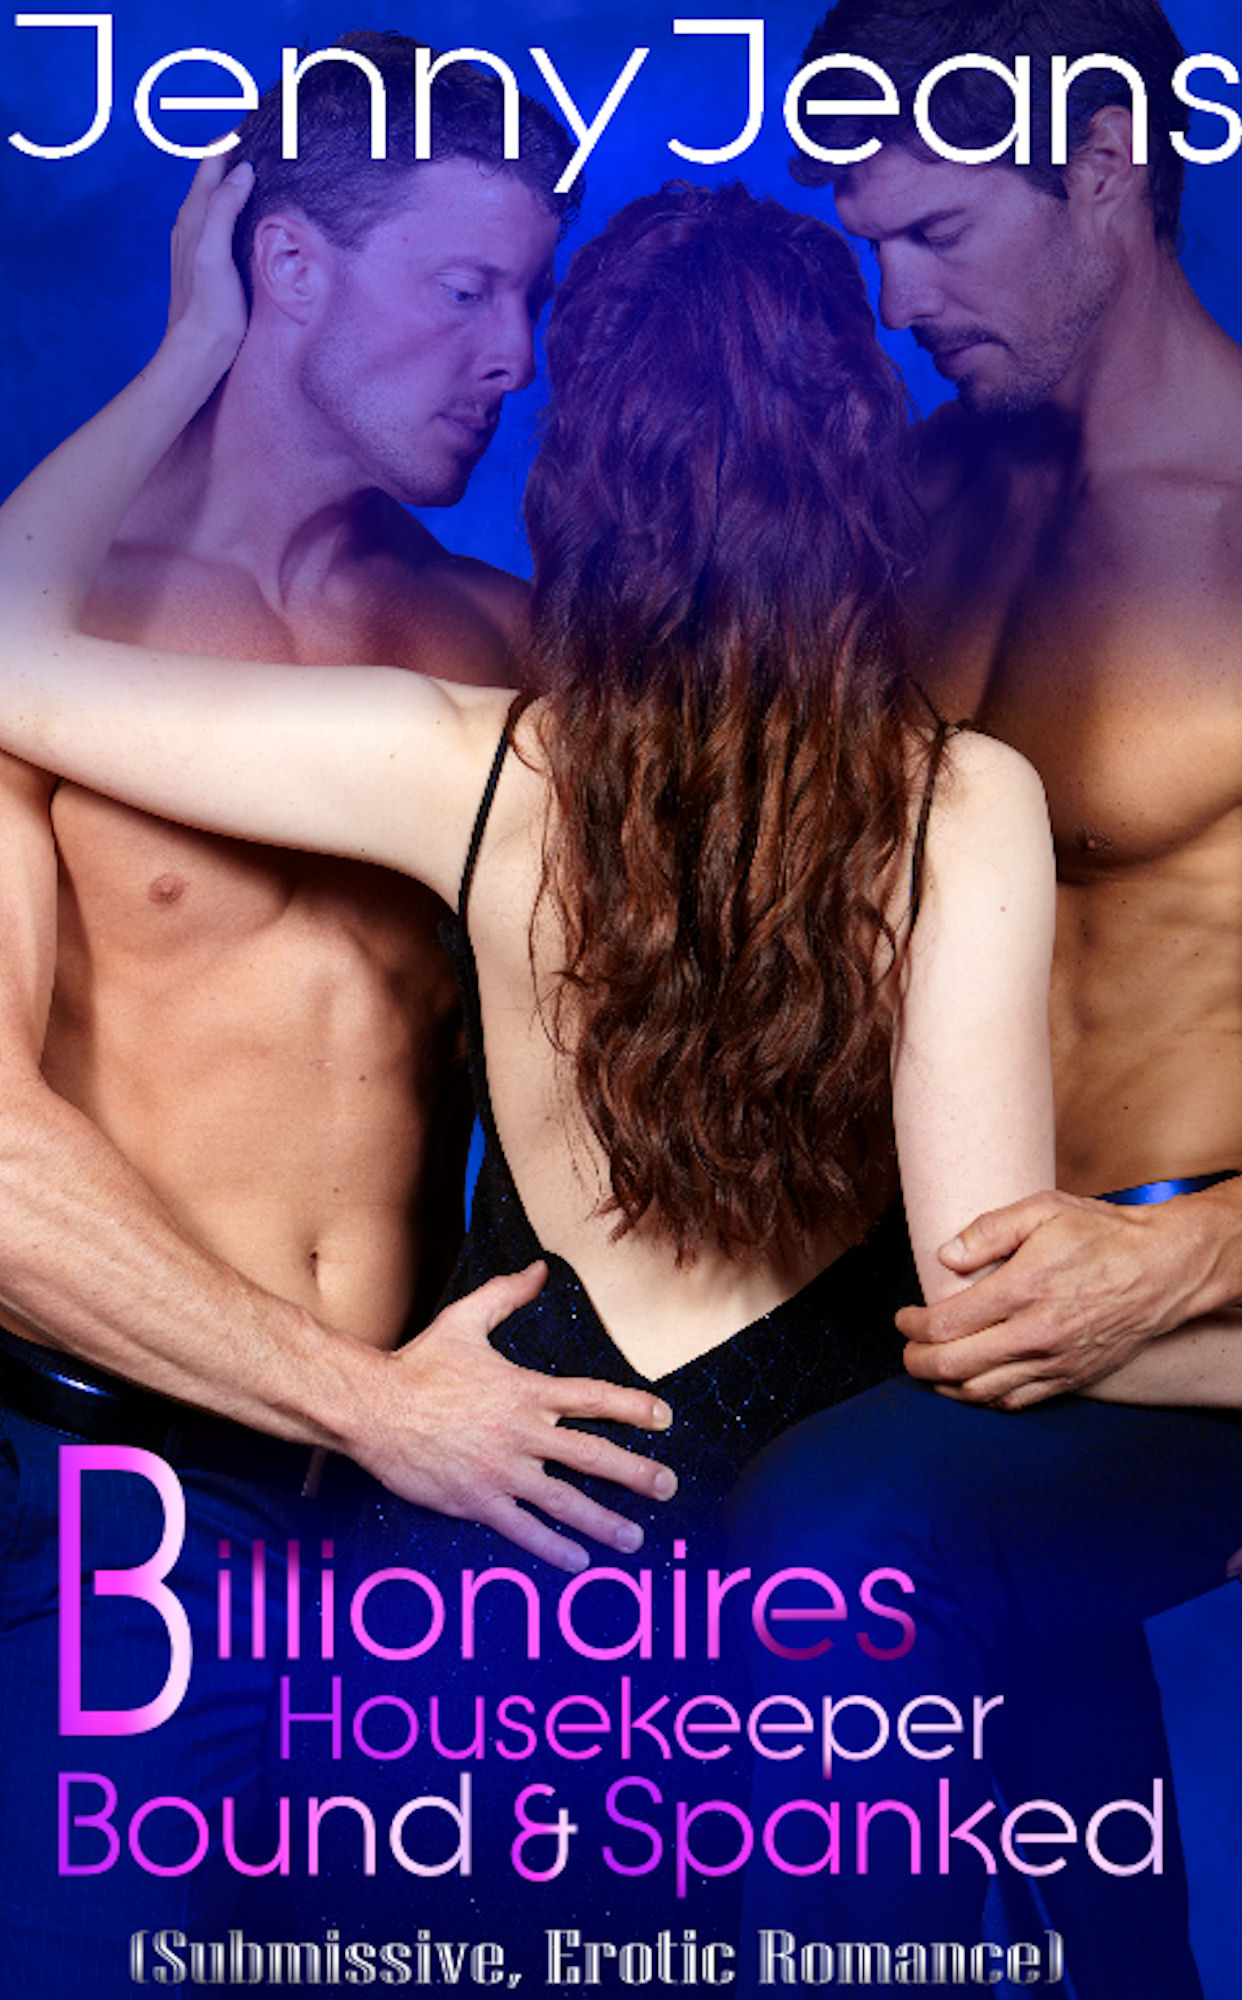 Billionaires Housekeeper Bound & Spanked Part One (Submission, Erotic Romance) By: Jenny Jeans